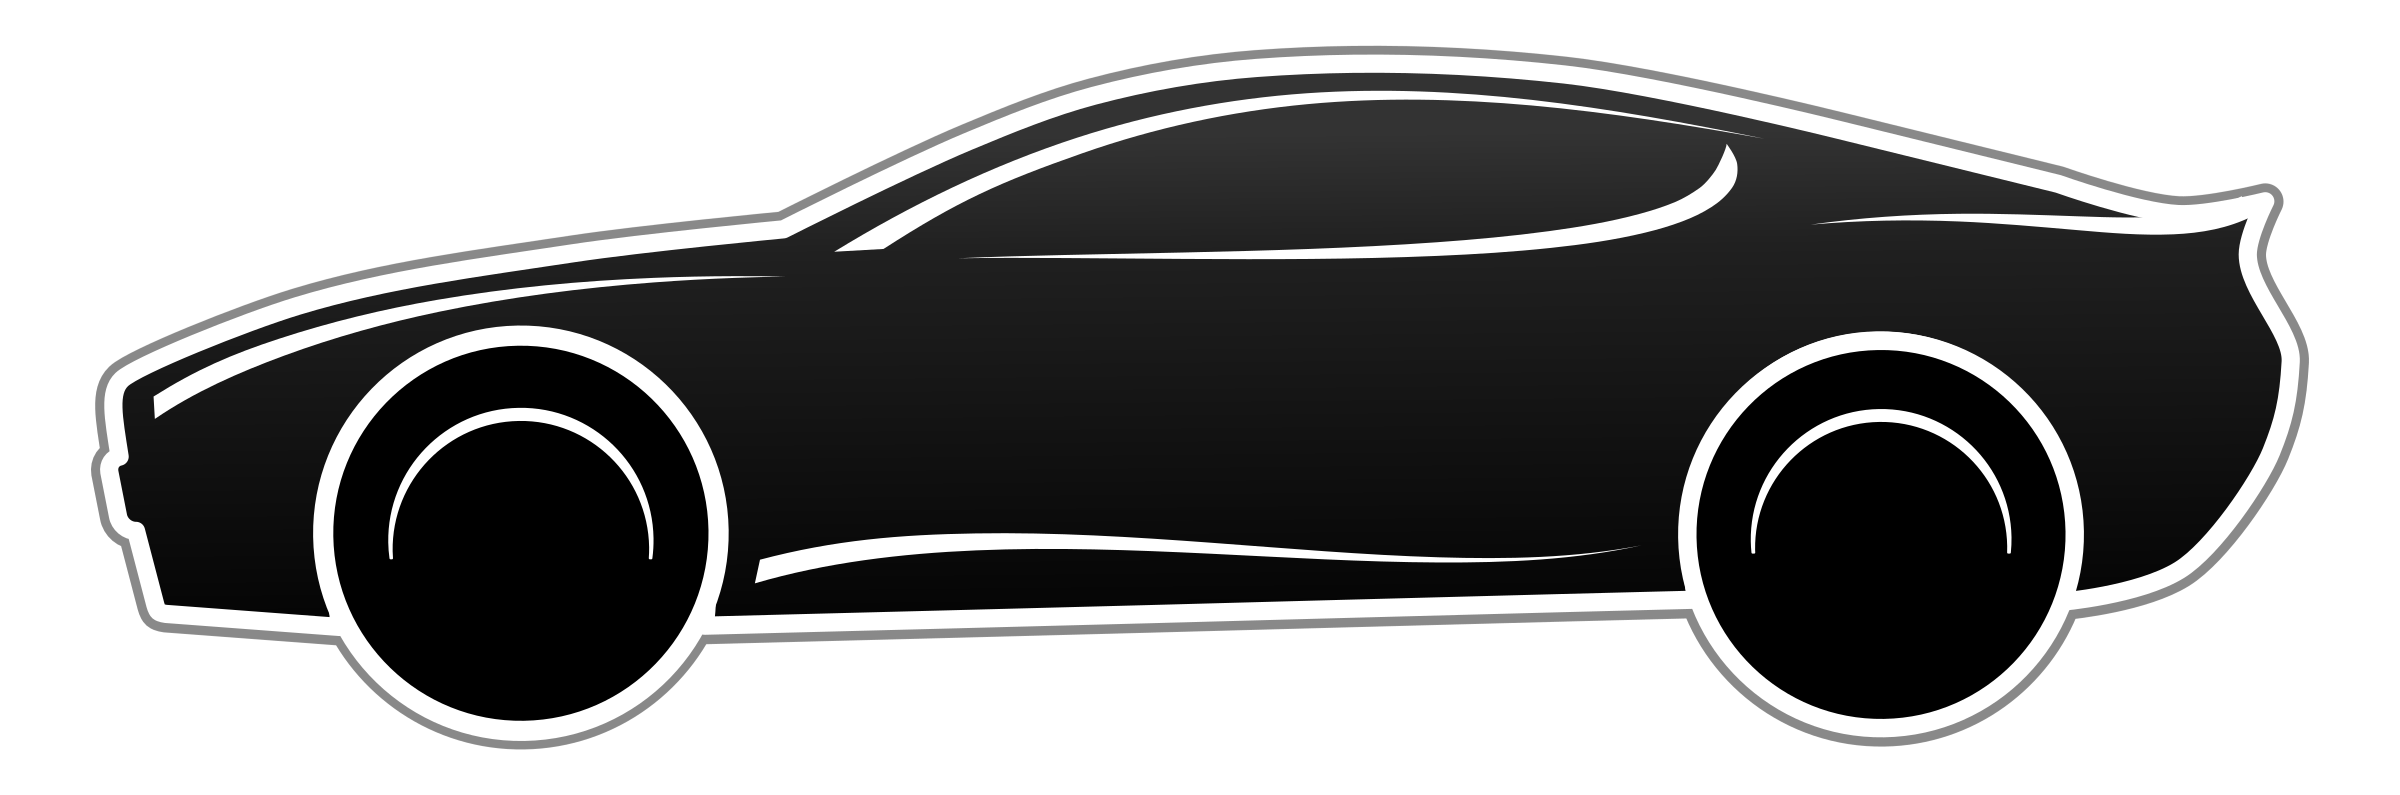 clipart Black and white sport clipart. Fast car png transparent